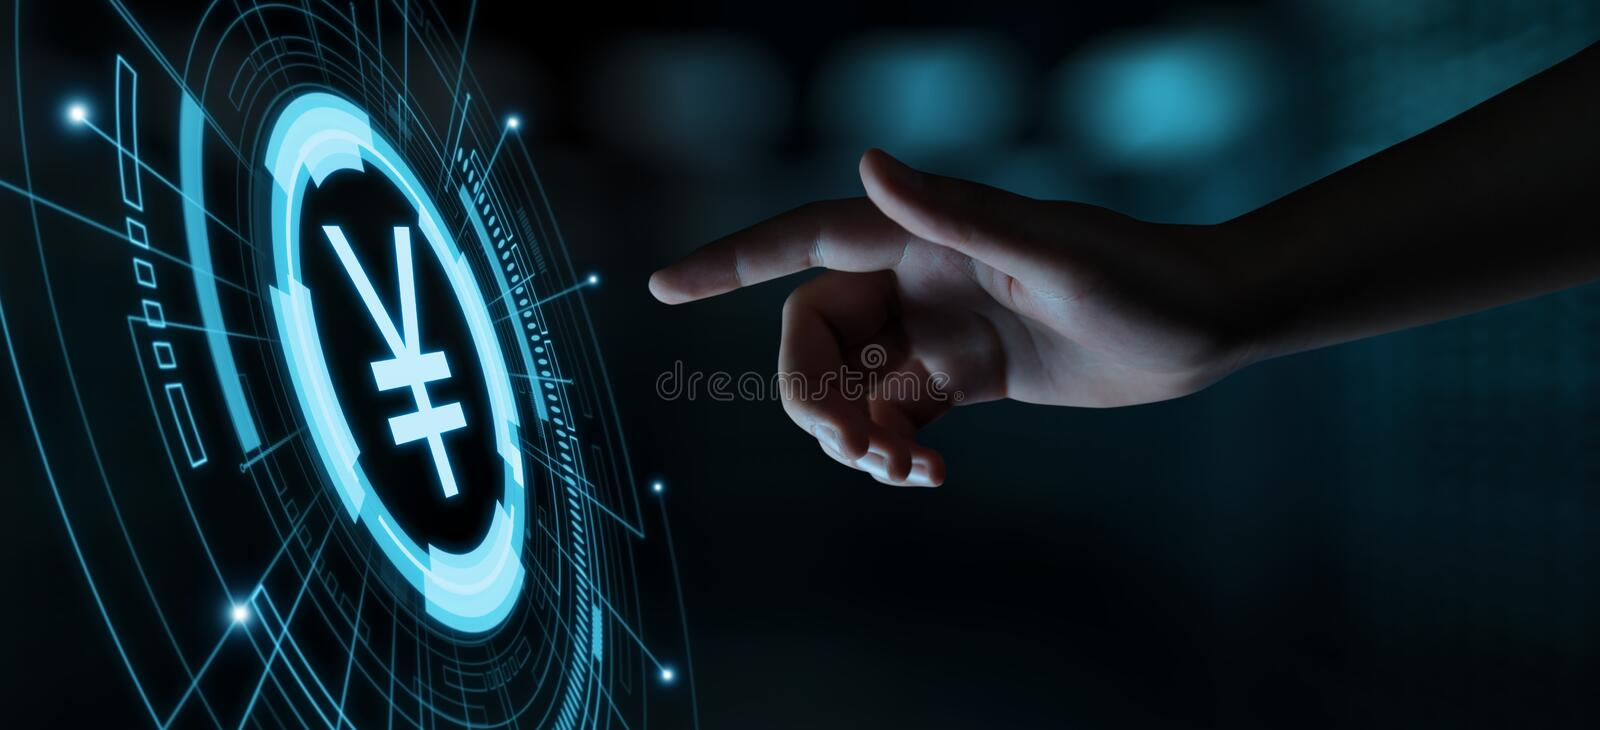 Yen Currency Business Banking Finance Technology Concept.  stock photography